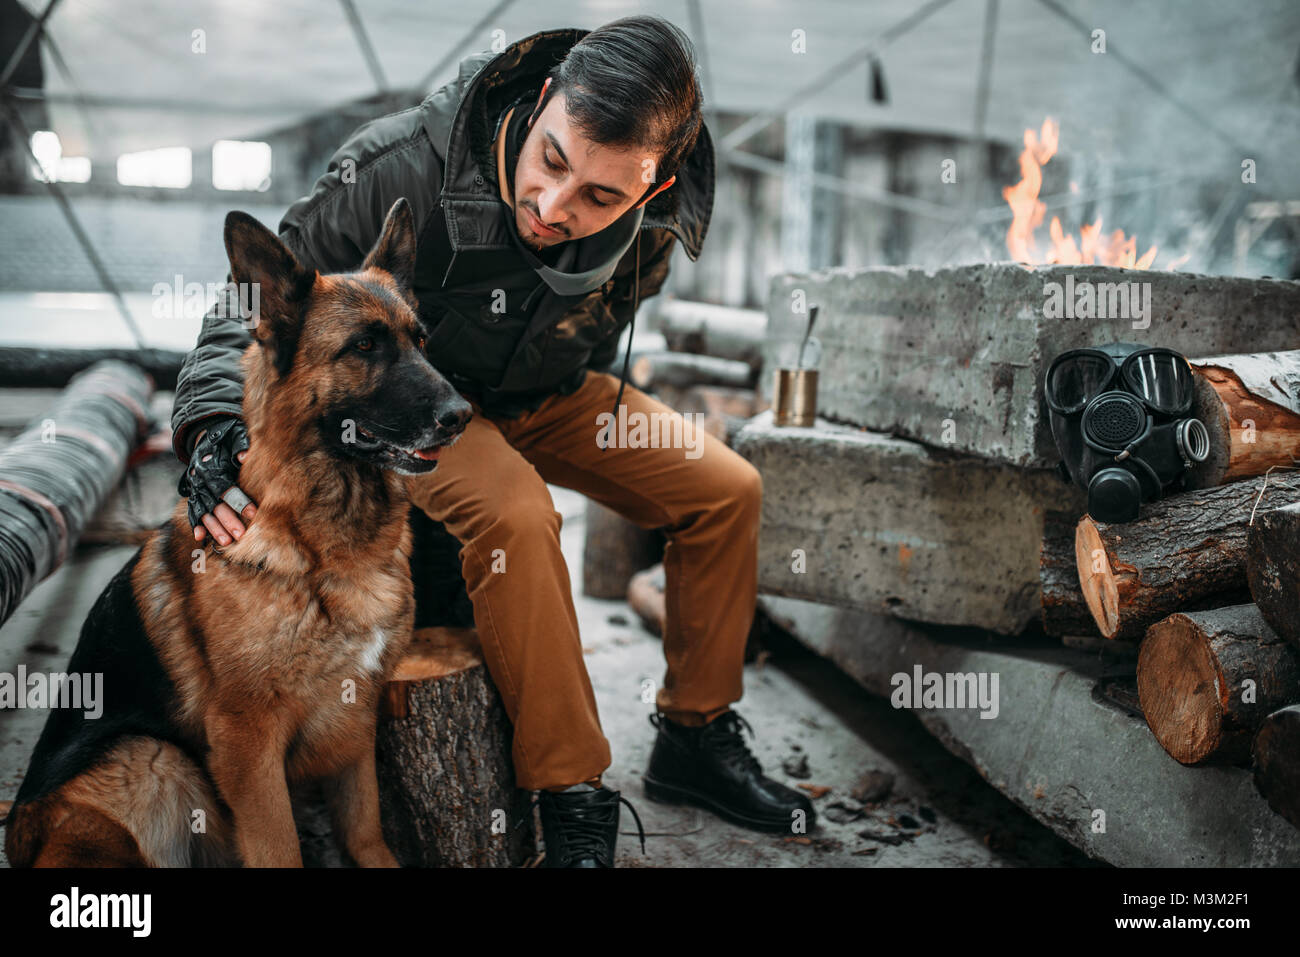 Stalker, post-apocalypse soldier feeding a dog. Post apocalyptic lifestyle on ruins, doomsday, judgment day - Stock Image